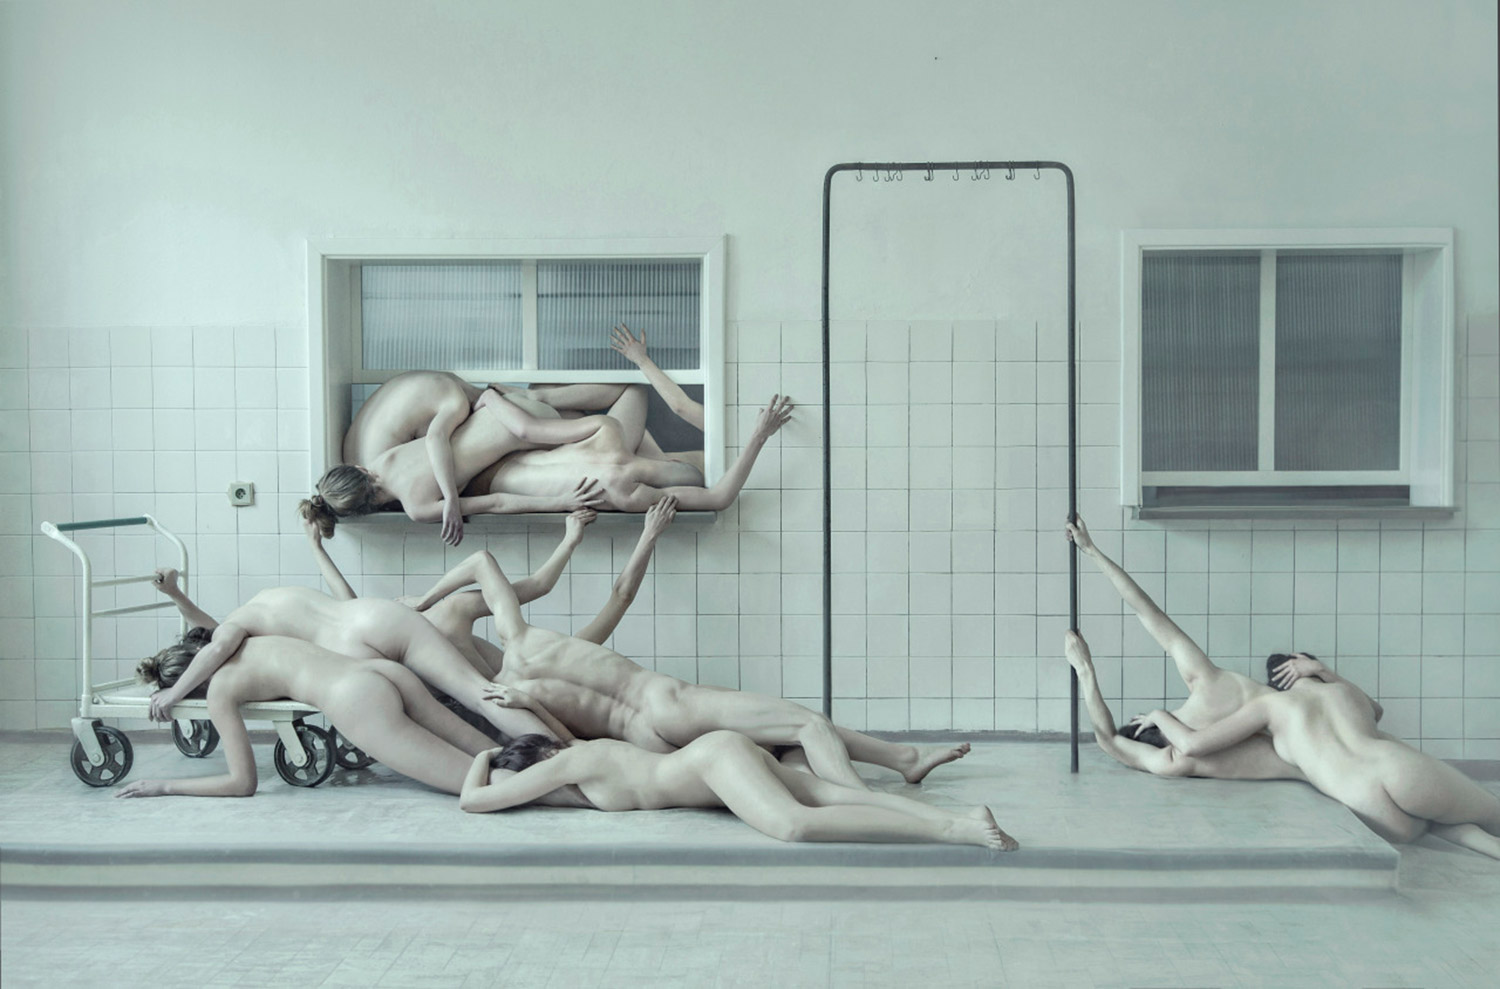 Evelyn Bencicova, Ecce Homo, pile of bodies in hospital-like room